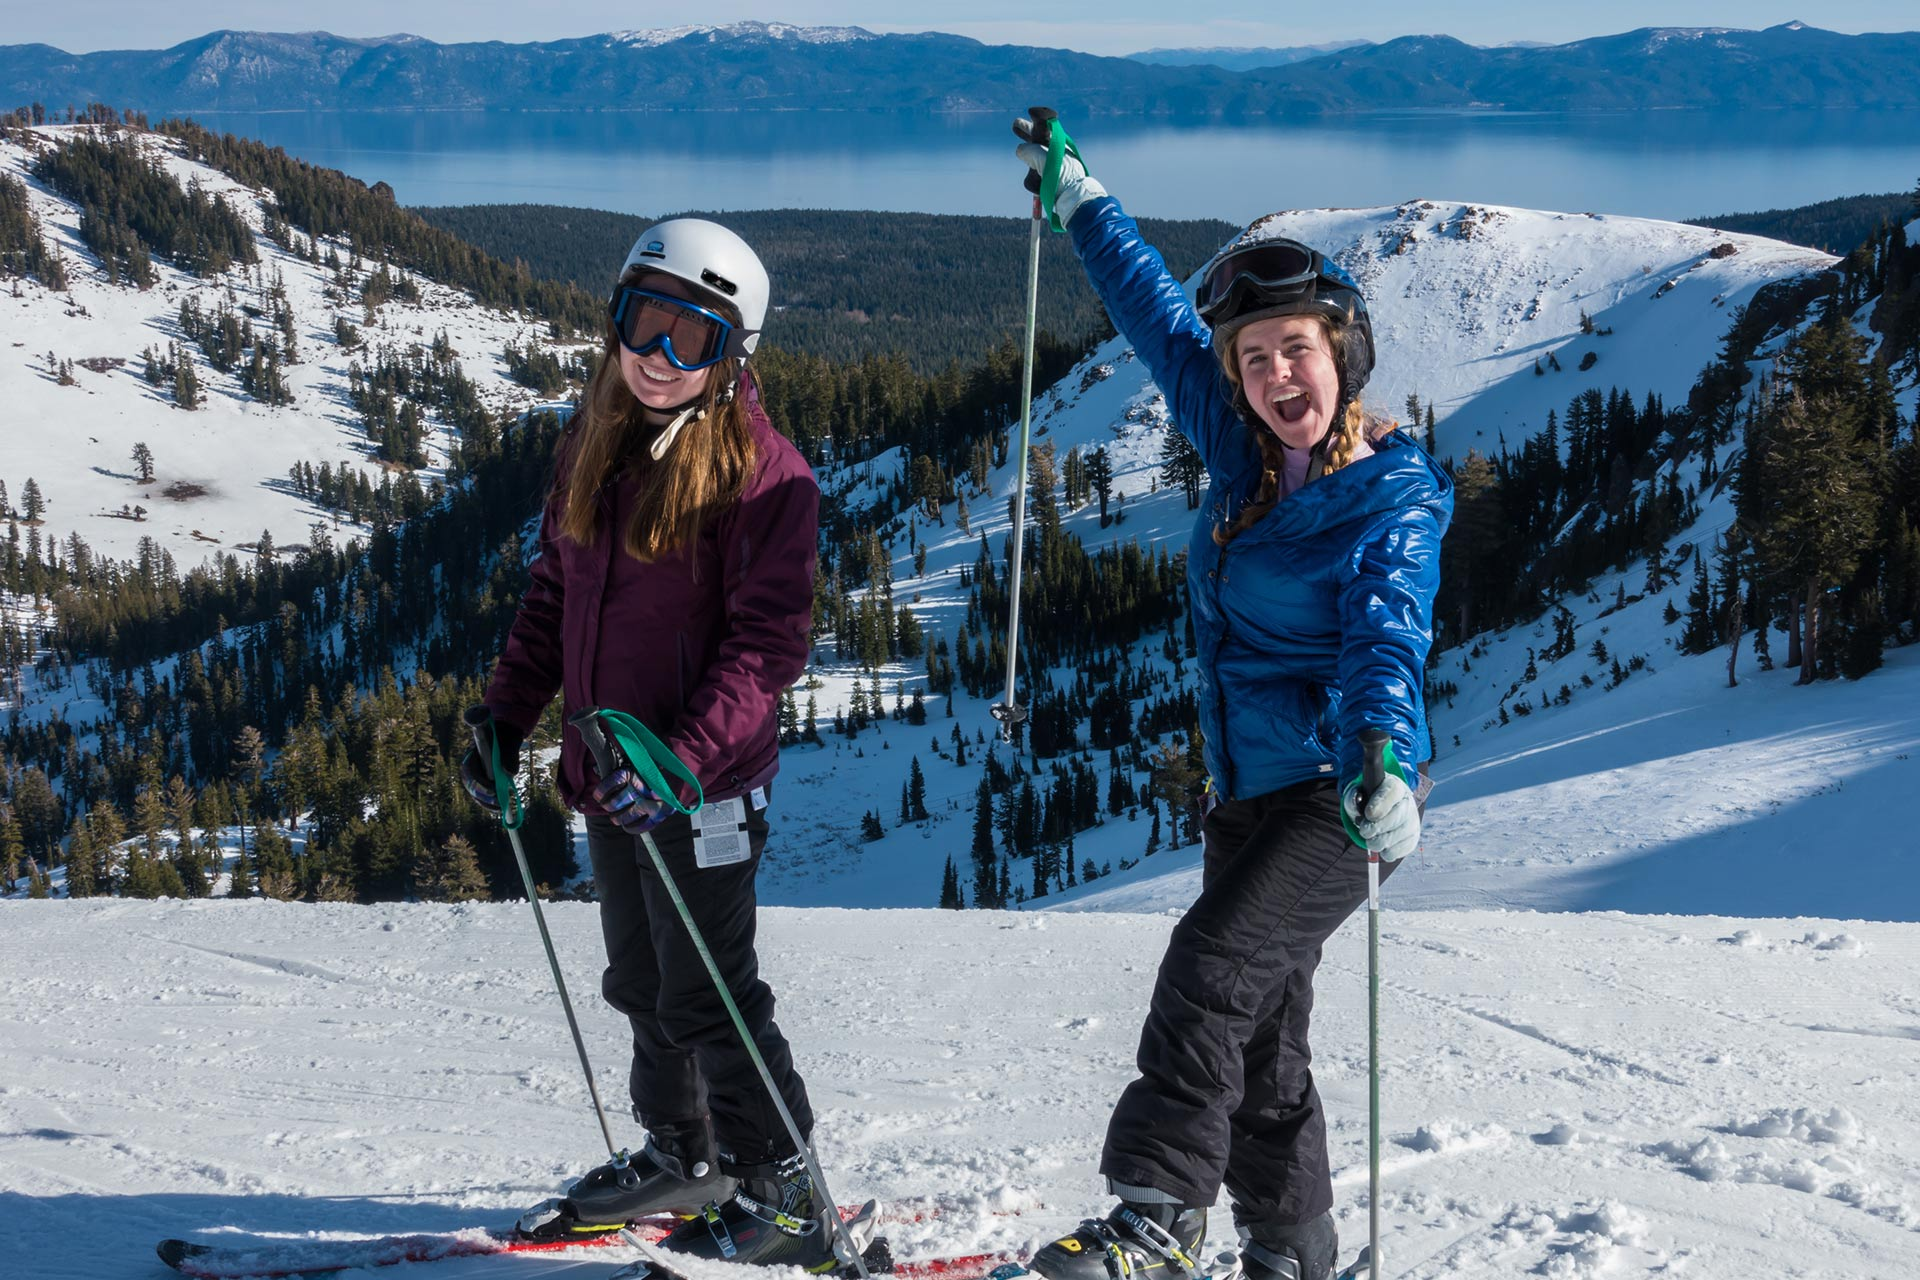 Two teen girls getting ready to rip it down the mountain at Northstar in California.